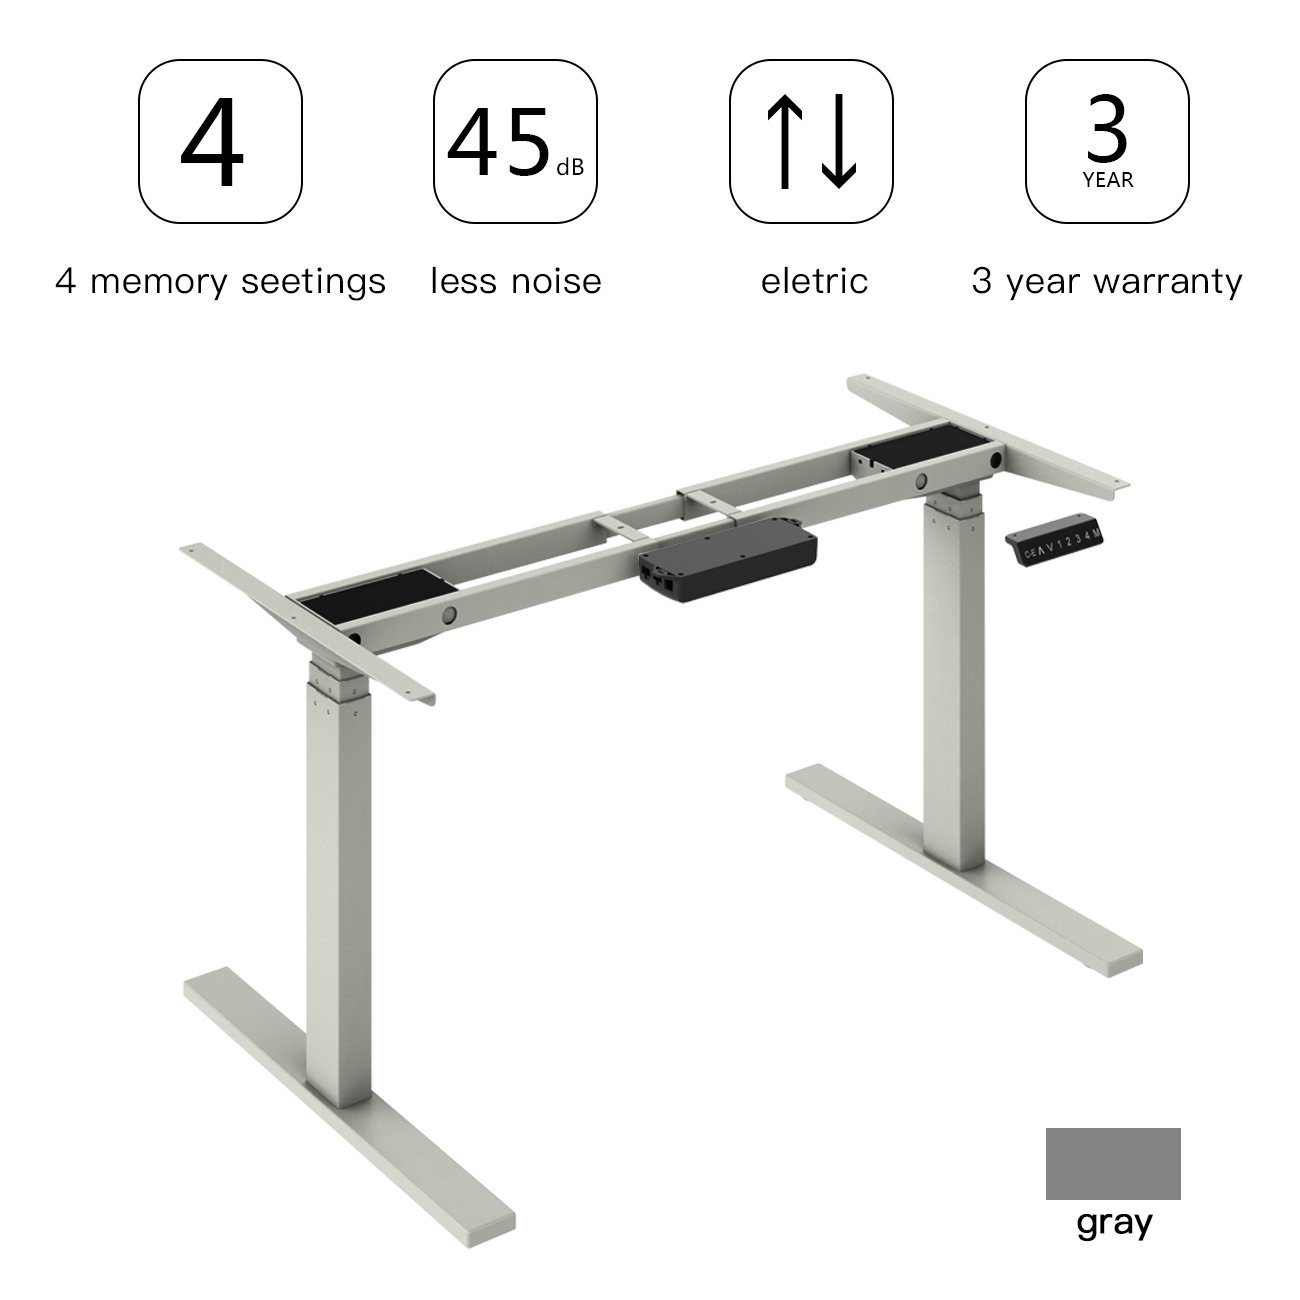 AODAILIHB Electric Stand Up Desk Frame Workstation,Adjustable Base Height Sit-Stand Standing Desk Frame Dual Motors More Stable (Grey) by AODAILIHB